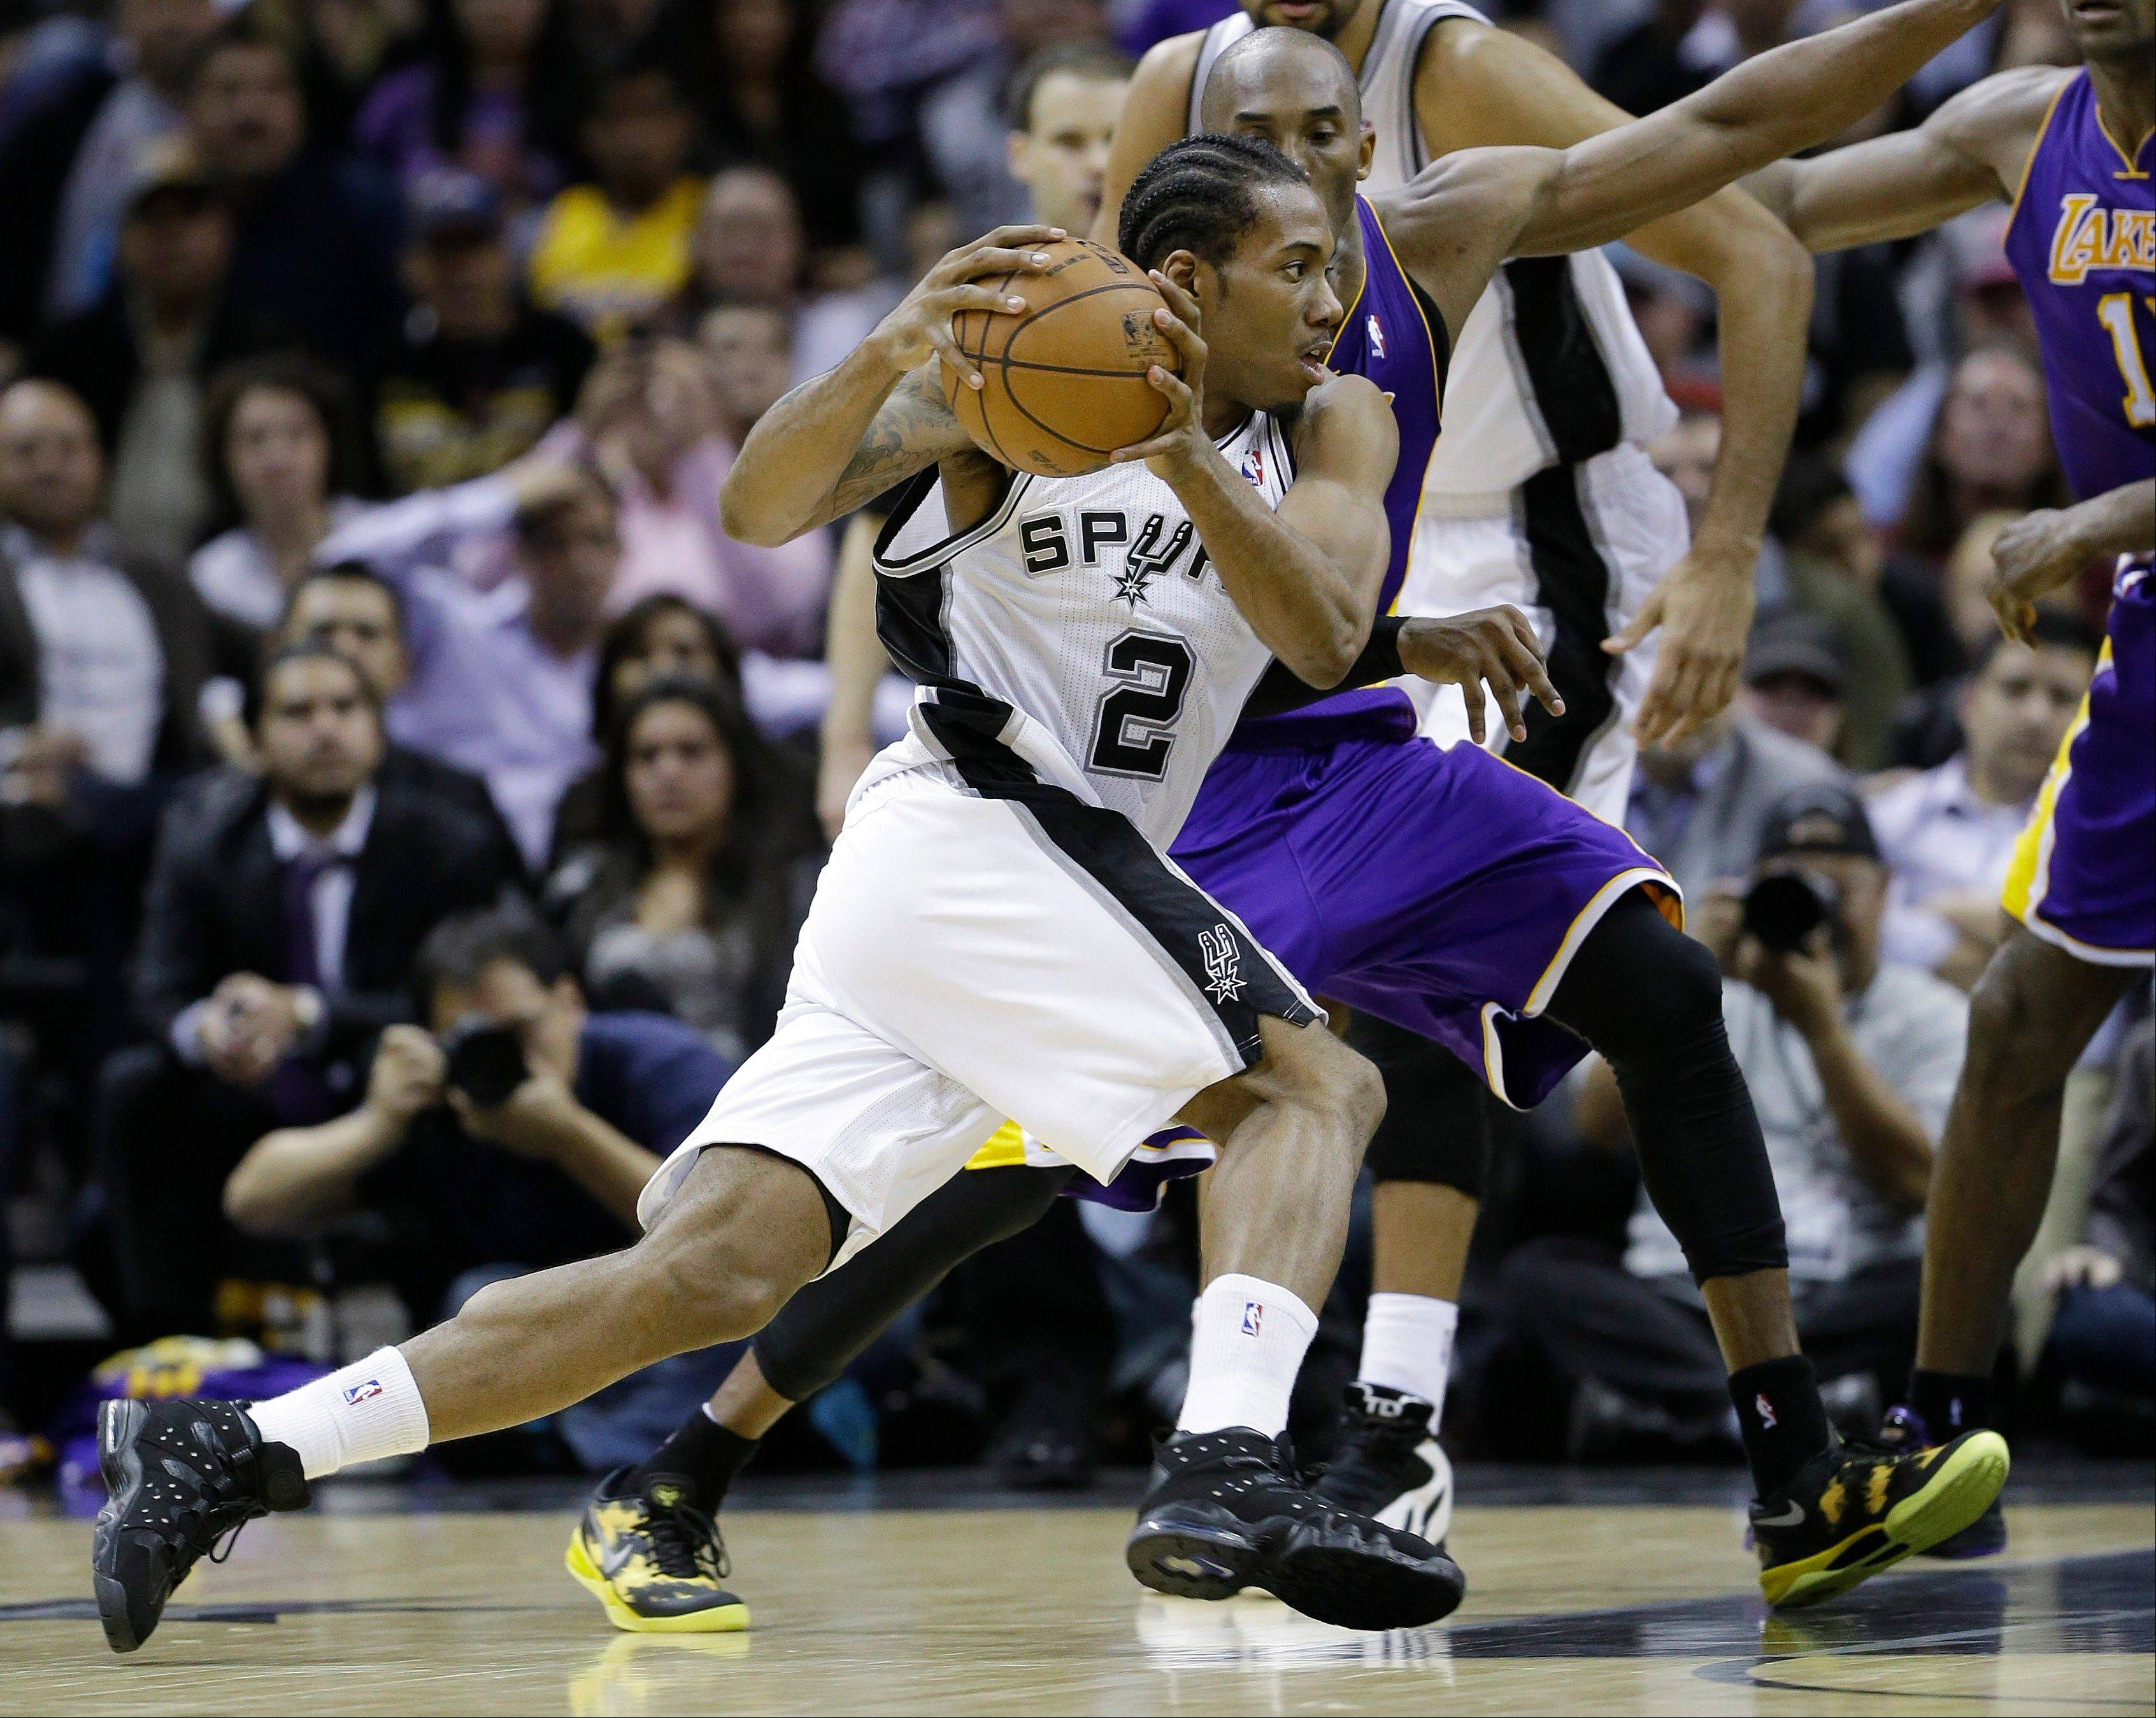 San Antonio Spurs' Kawhi Leonard (2) reaces around Los Angeles Lakers' Kobe Bryant, right, during the fourth quarter of an NBA basketball game on Wednesday in San Antonio. San Antonio won 108-105.